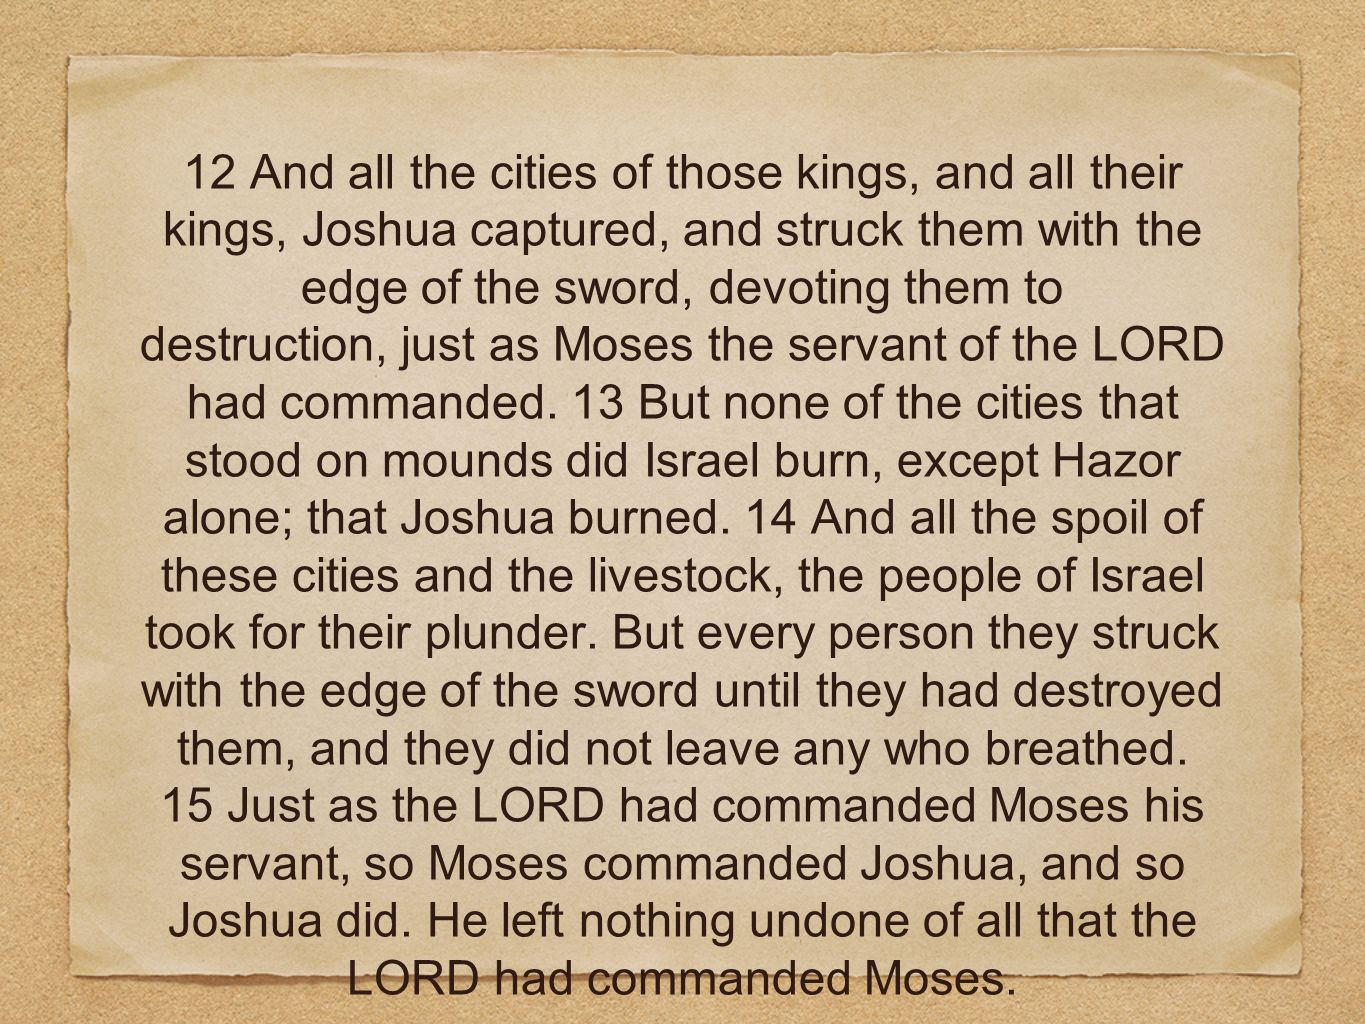 12 And all the cities of those kings, and all their kings, Joshua captured, and struck them with the edge of the sword, devoting them to destruction, just as Moses the servant of the LORD had commanded.